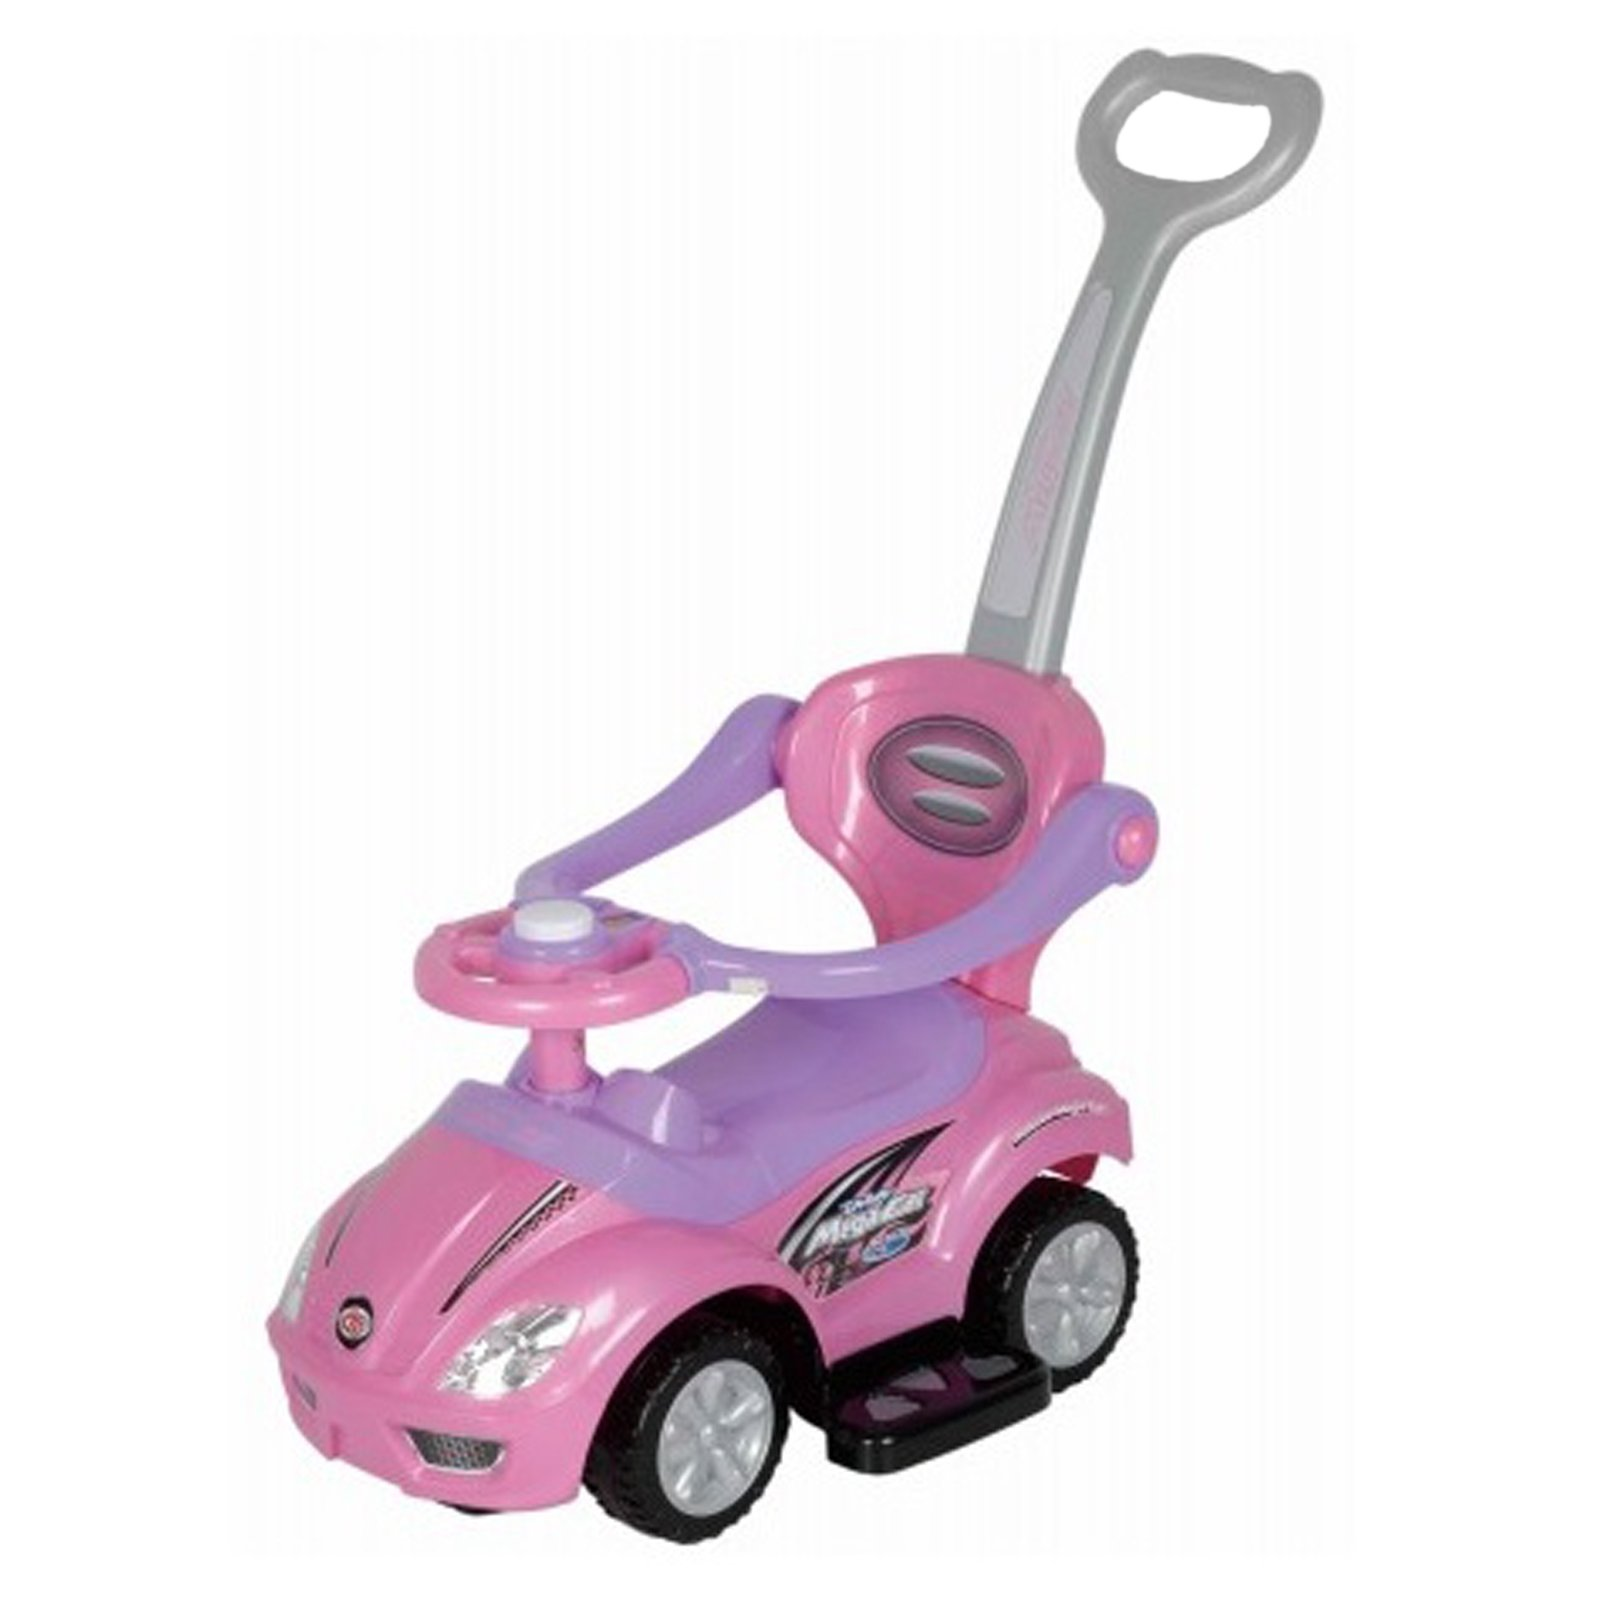 3-in-1 Stroller Kids Ride On Push Car in Pink